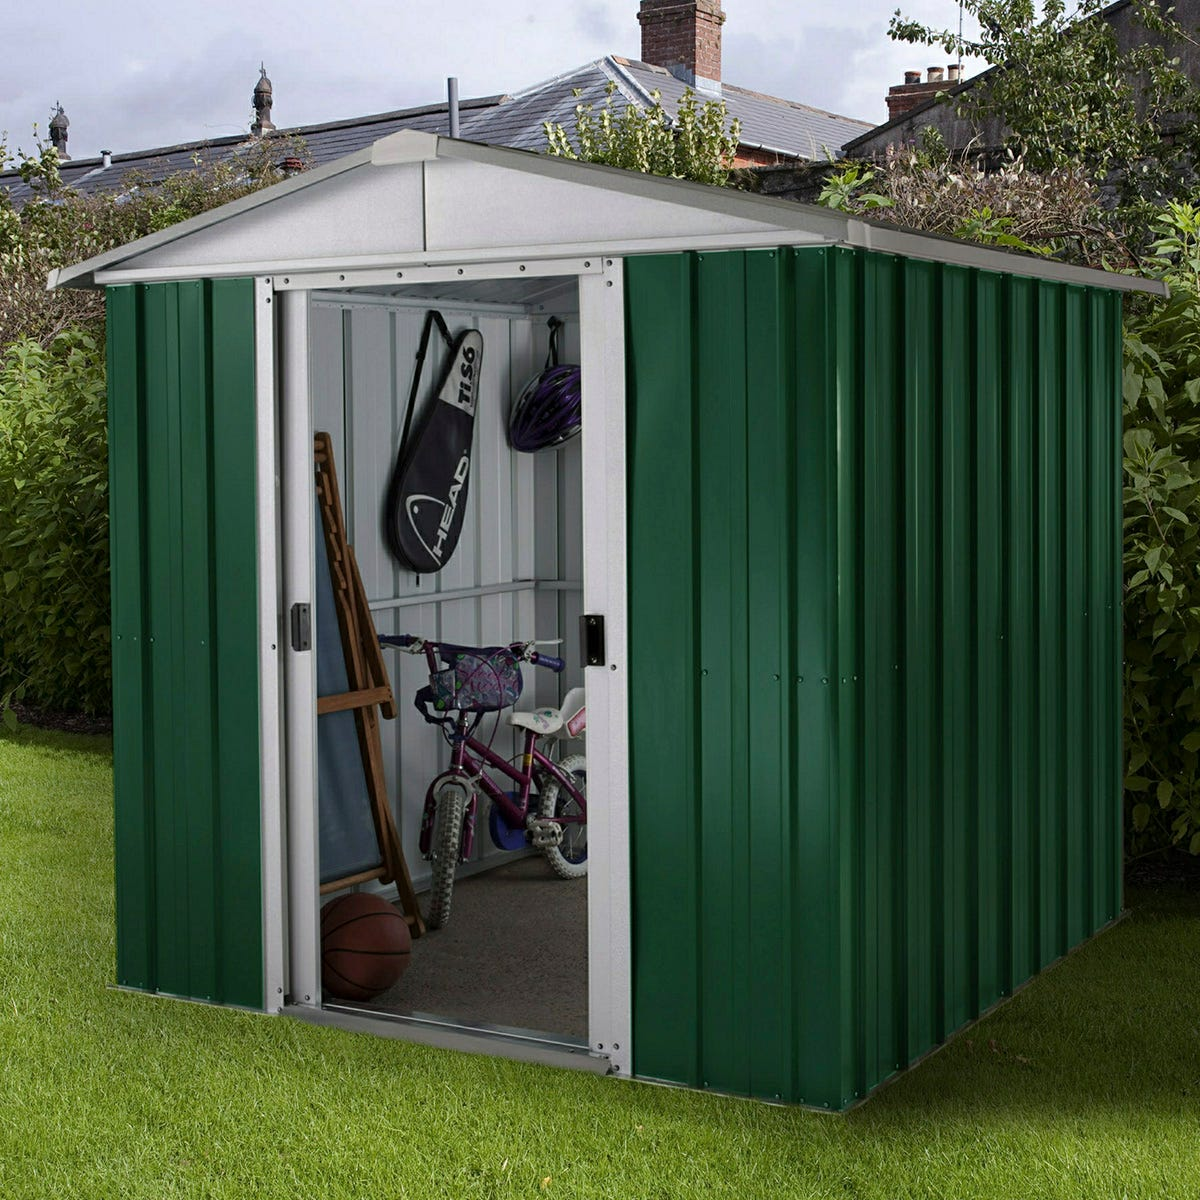 Yardmaster Emerald Metal Apex Shed 6 x 4.5ft with Floor Support Frame